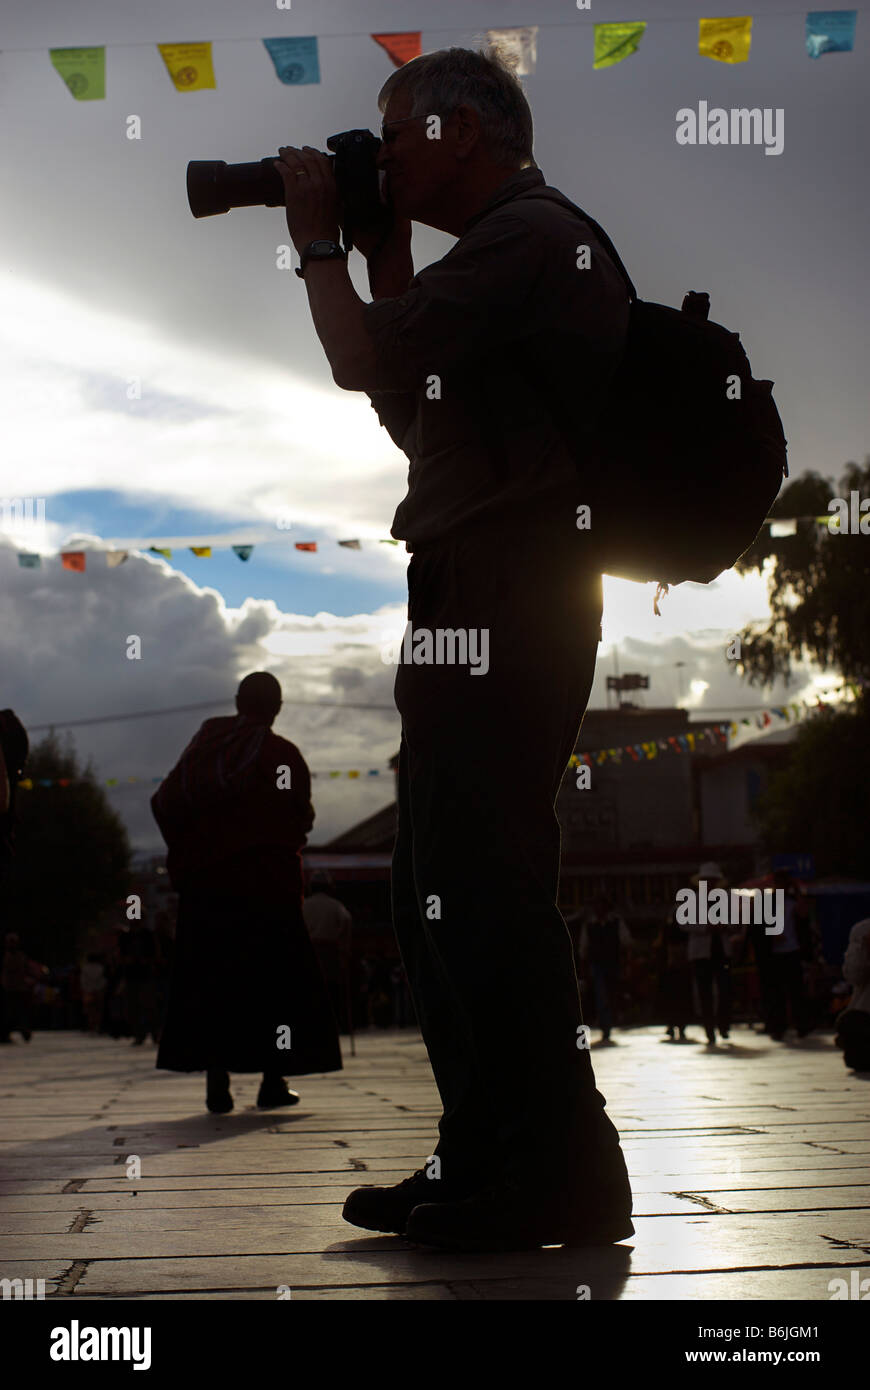 Silhouette of a photographer with a professional camera composing a photograph. Barkor Square, Tibet - Stock Image